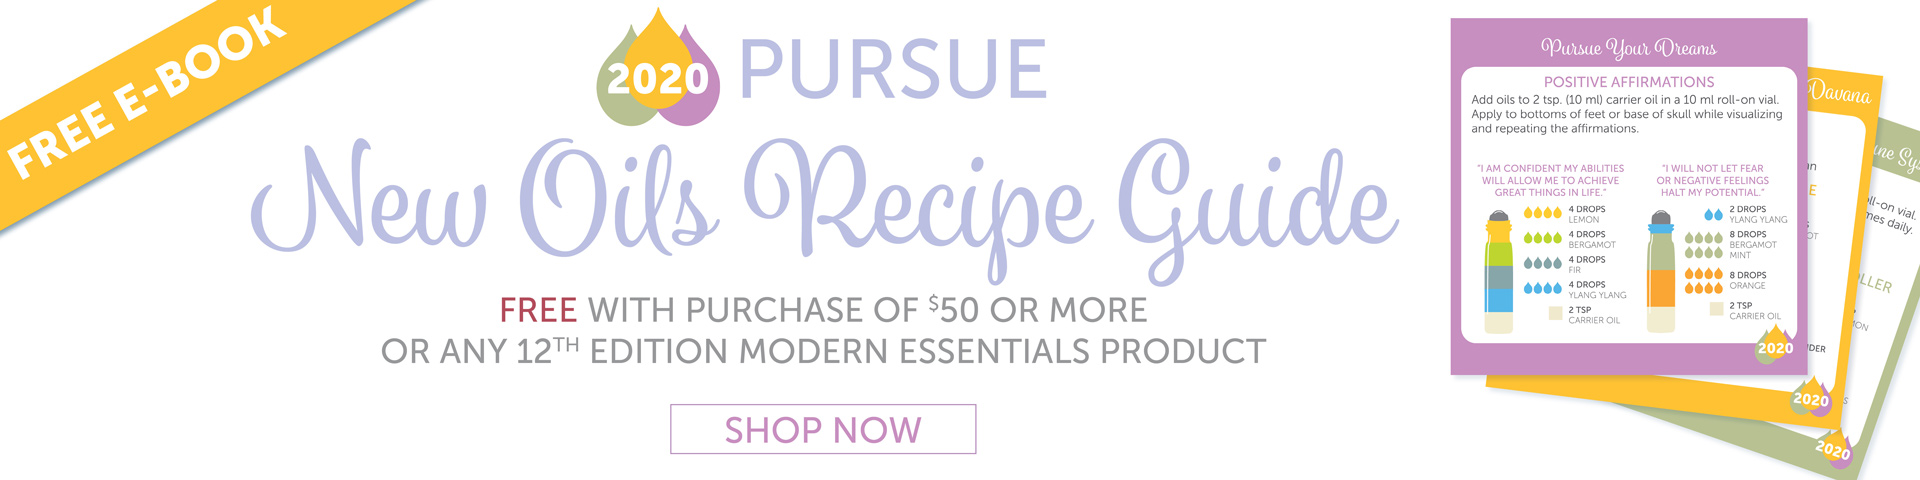 New Oils Recipe Guide Free with a Purchase of $50 or More